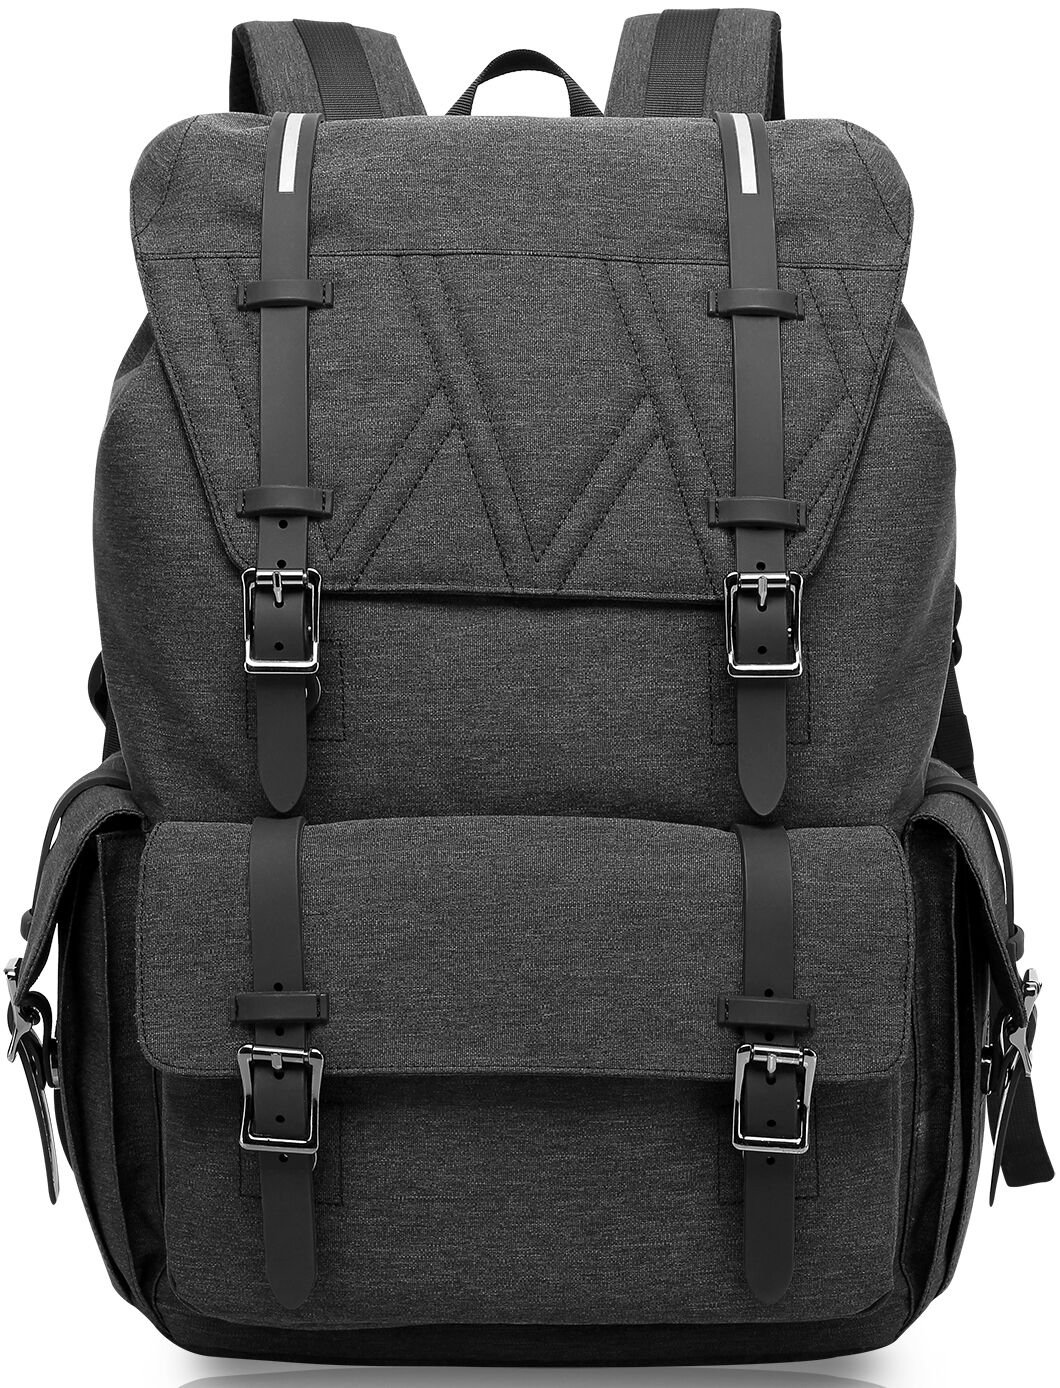 KAKA Water Resistant Laptop Bag Anti-Theft Travel Bag Large Capacity Shoulder Daypack School Backpack Black by KAKA